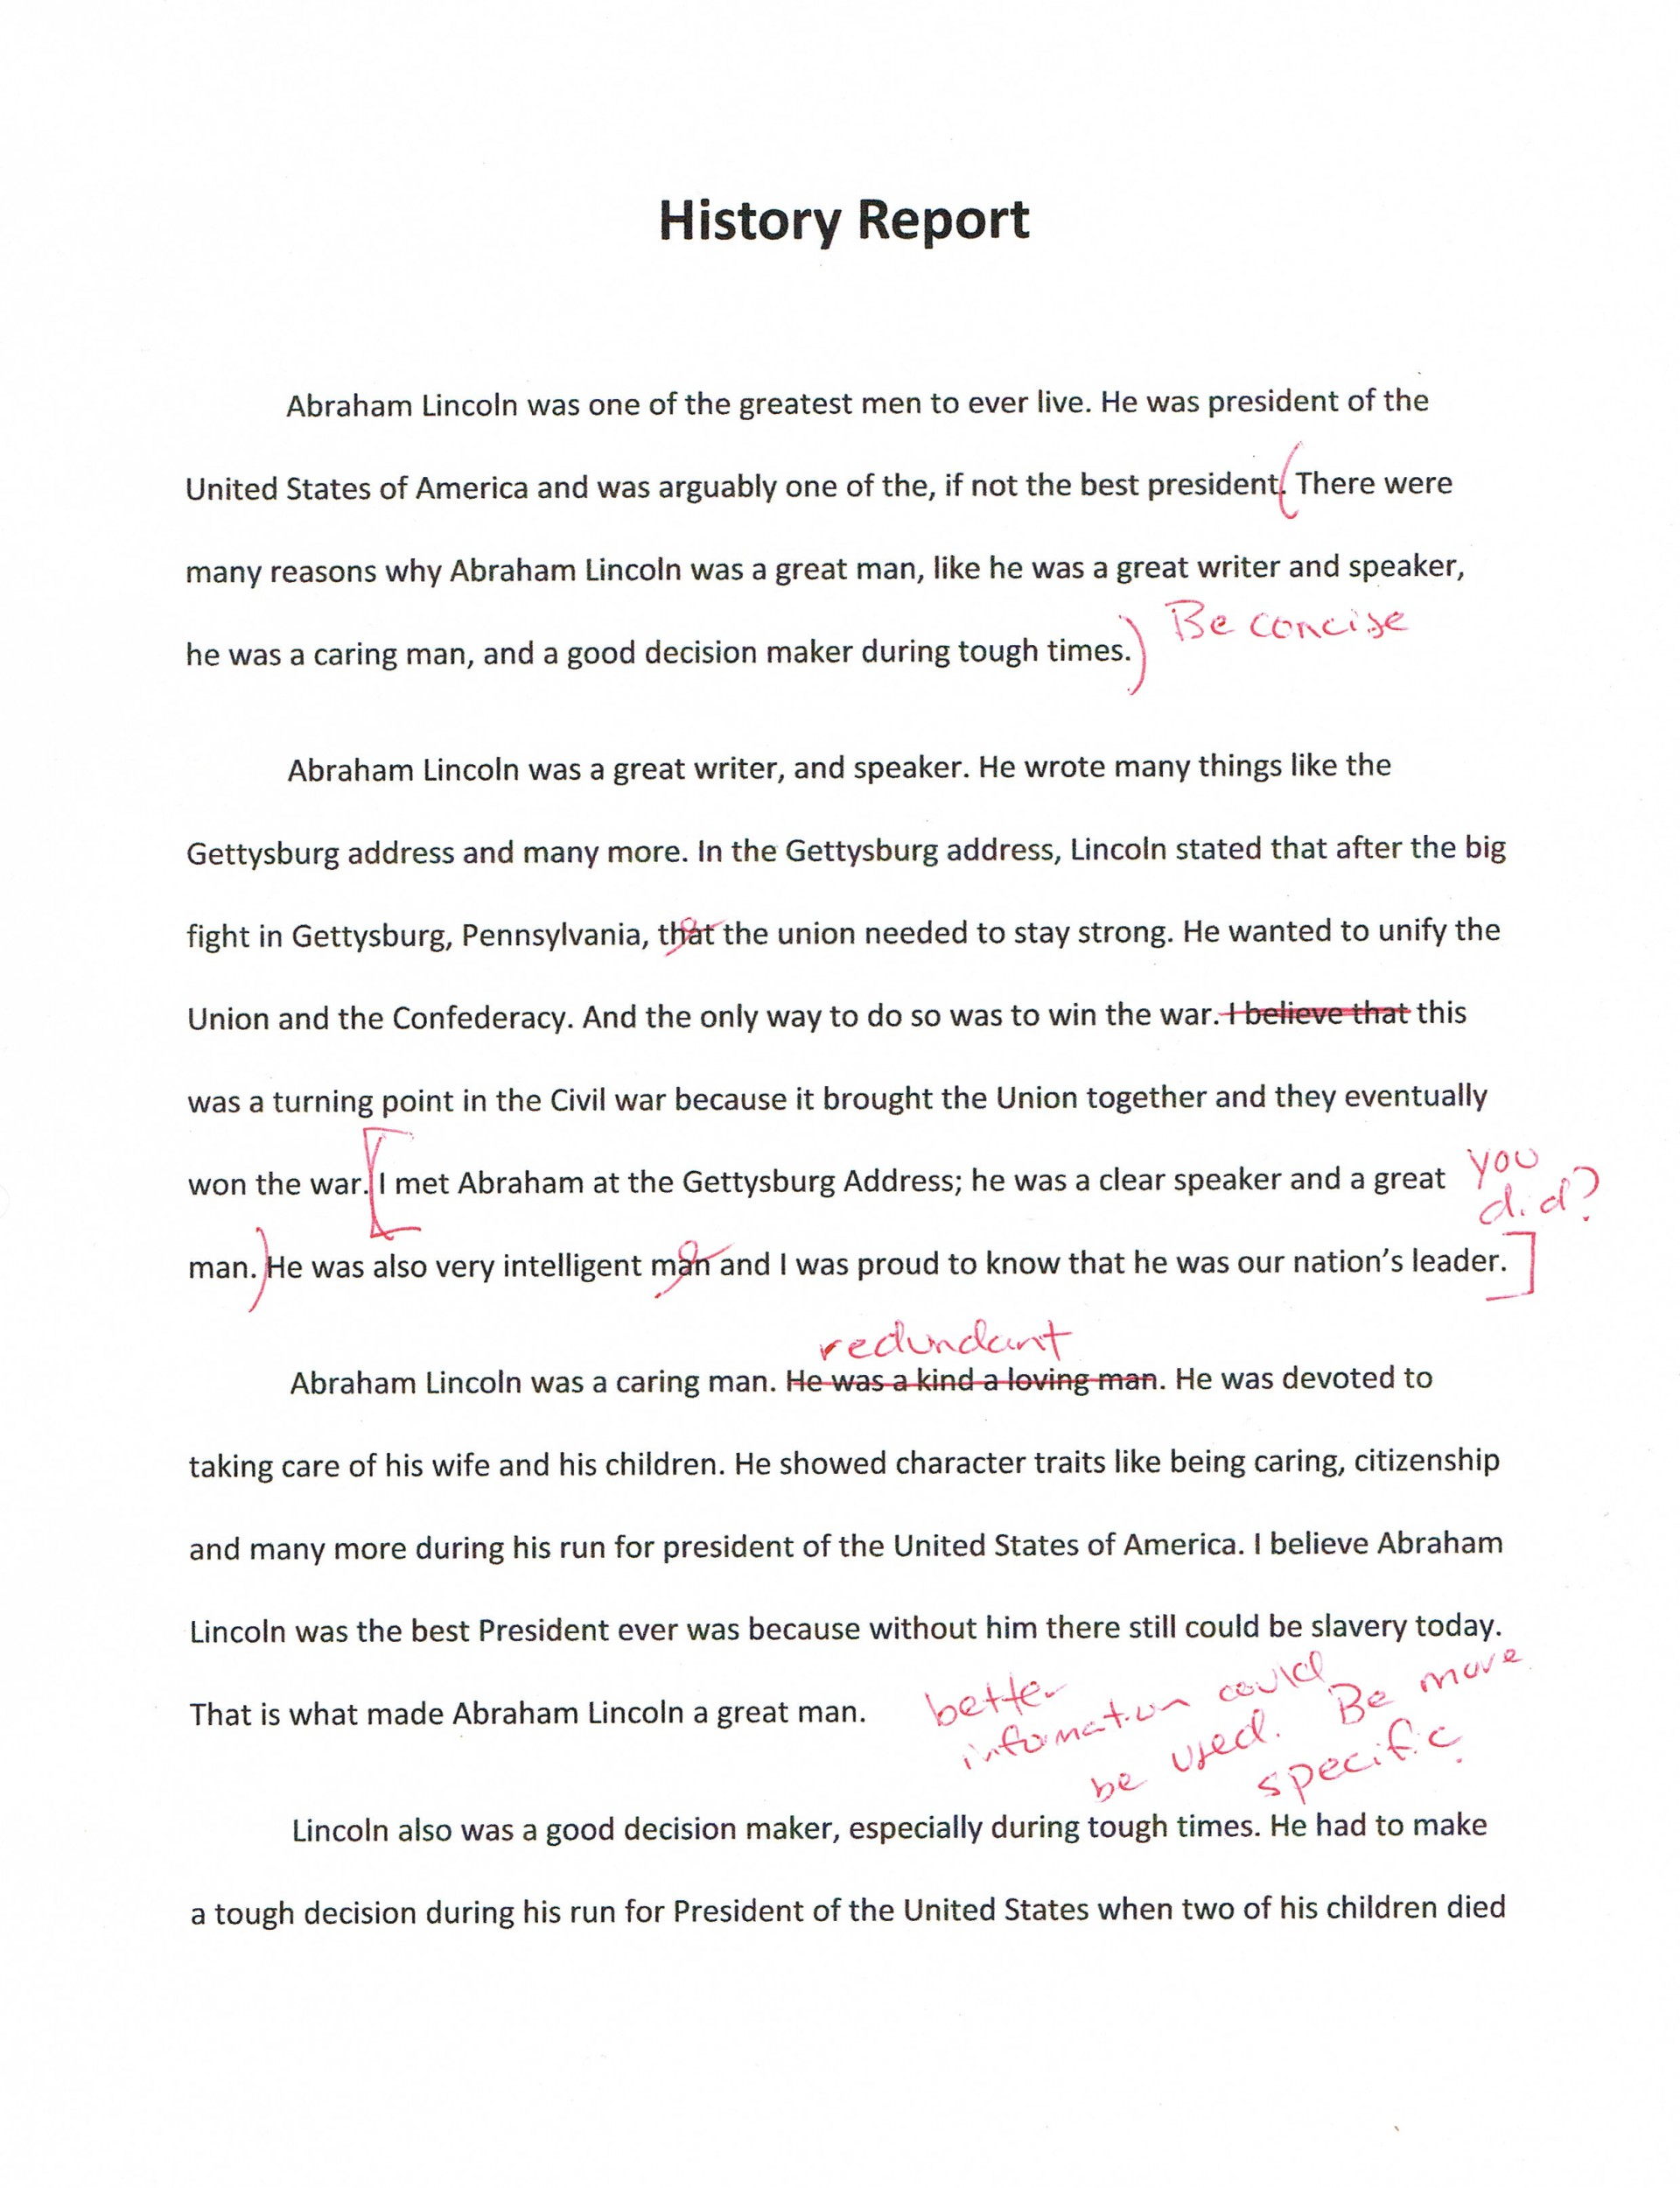 008 Essay Example How To Become An Online Writer Creative Writing Program Software Free Amazing App Generator Download 1920